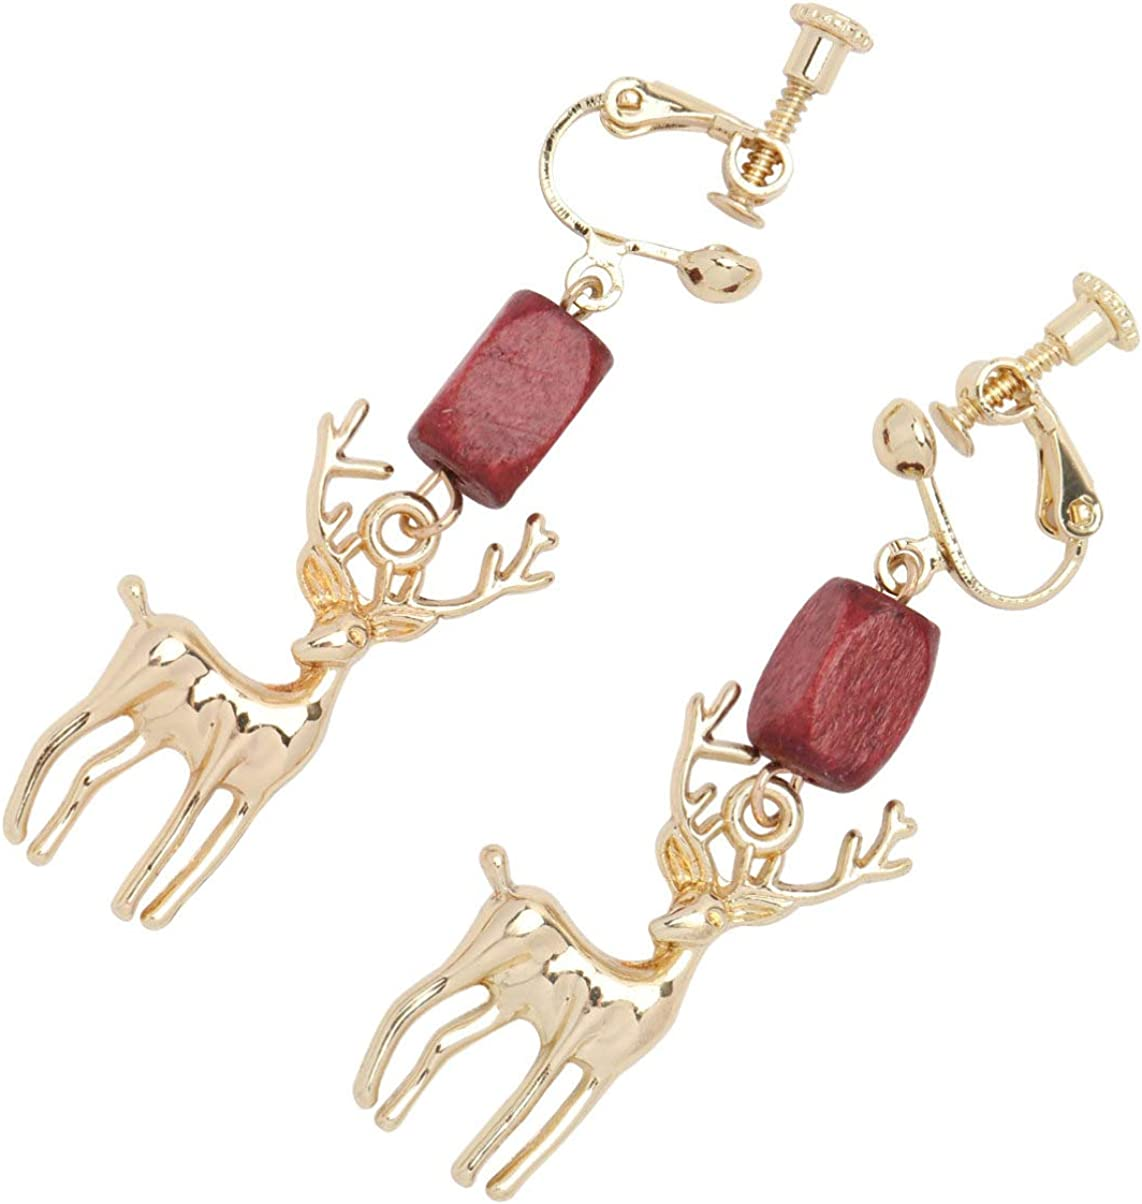 Happyyami Christmas Clip on Earrings Reindeer Jewelry for Women Holiday Gifts Style 1